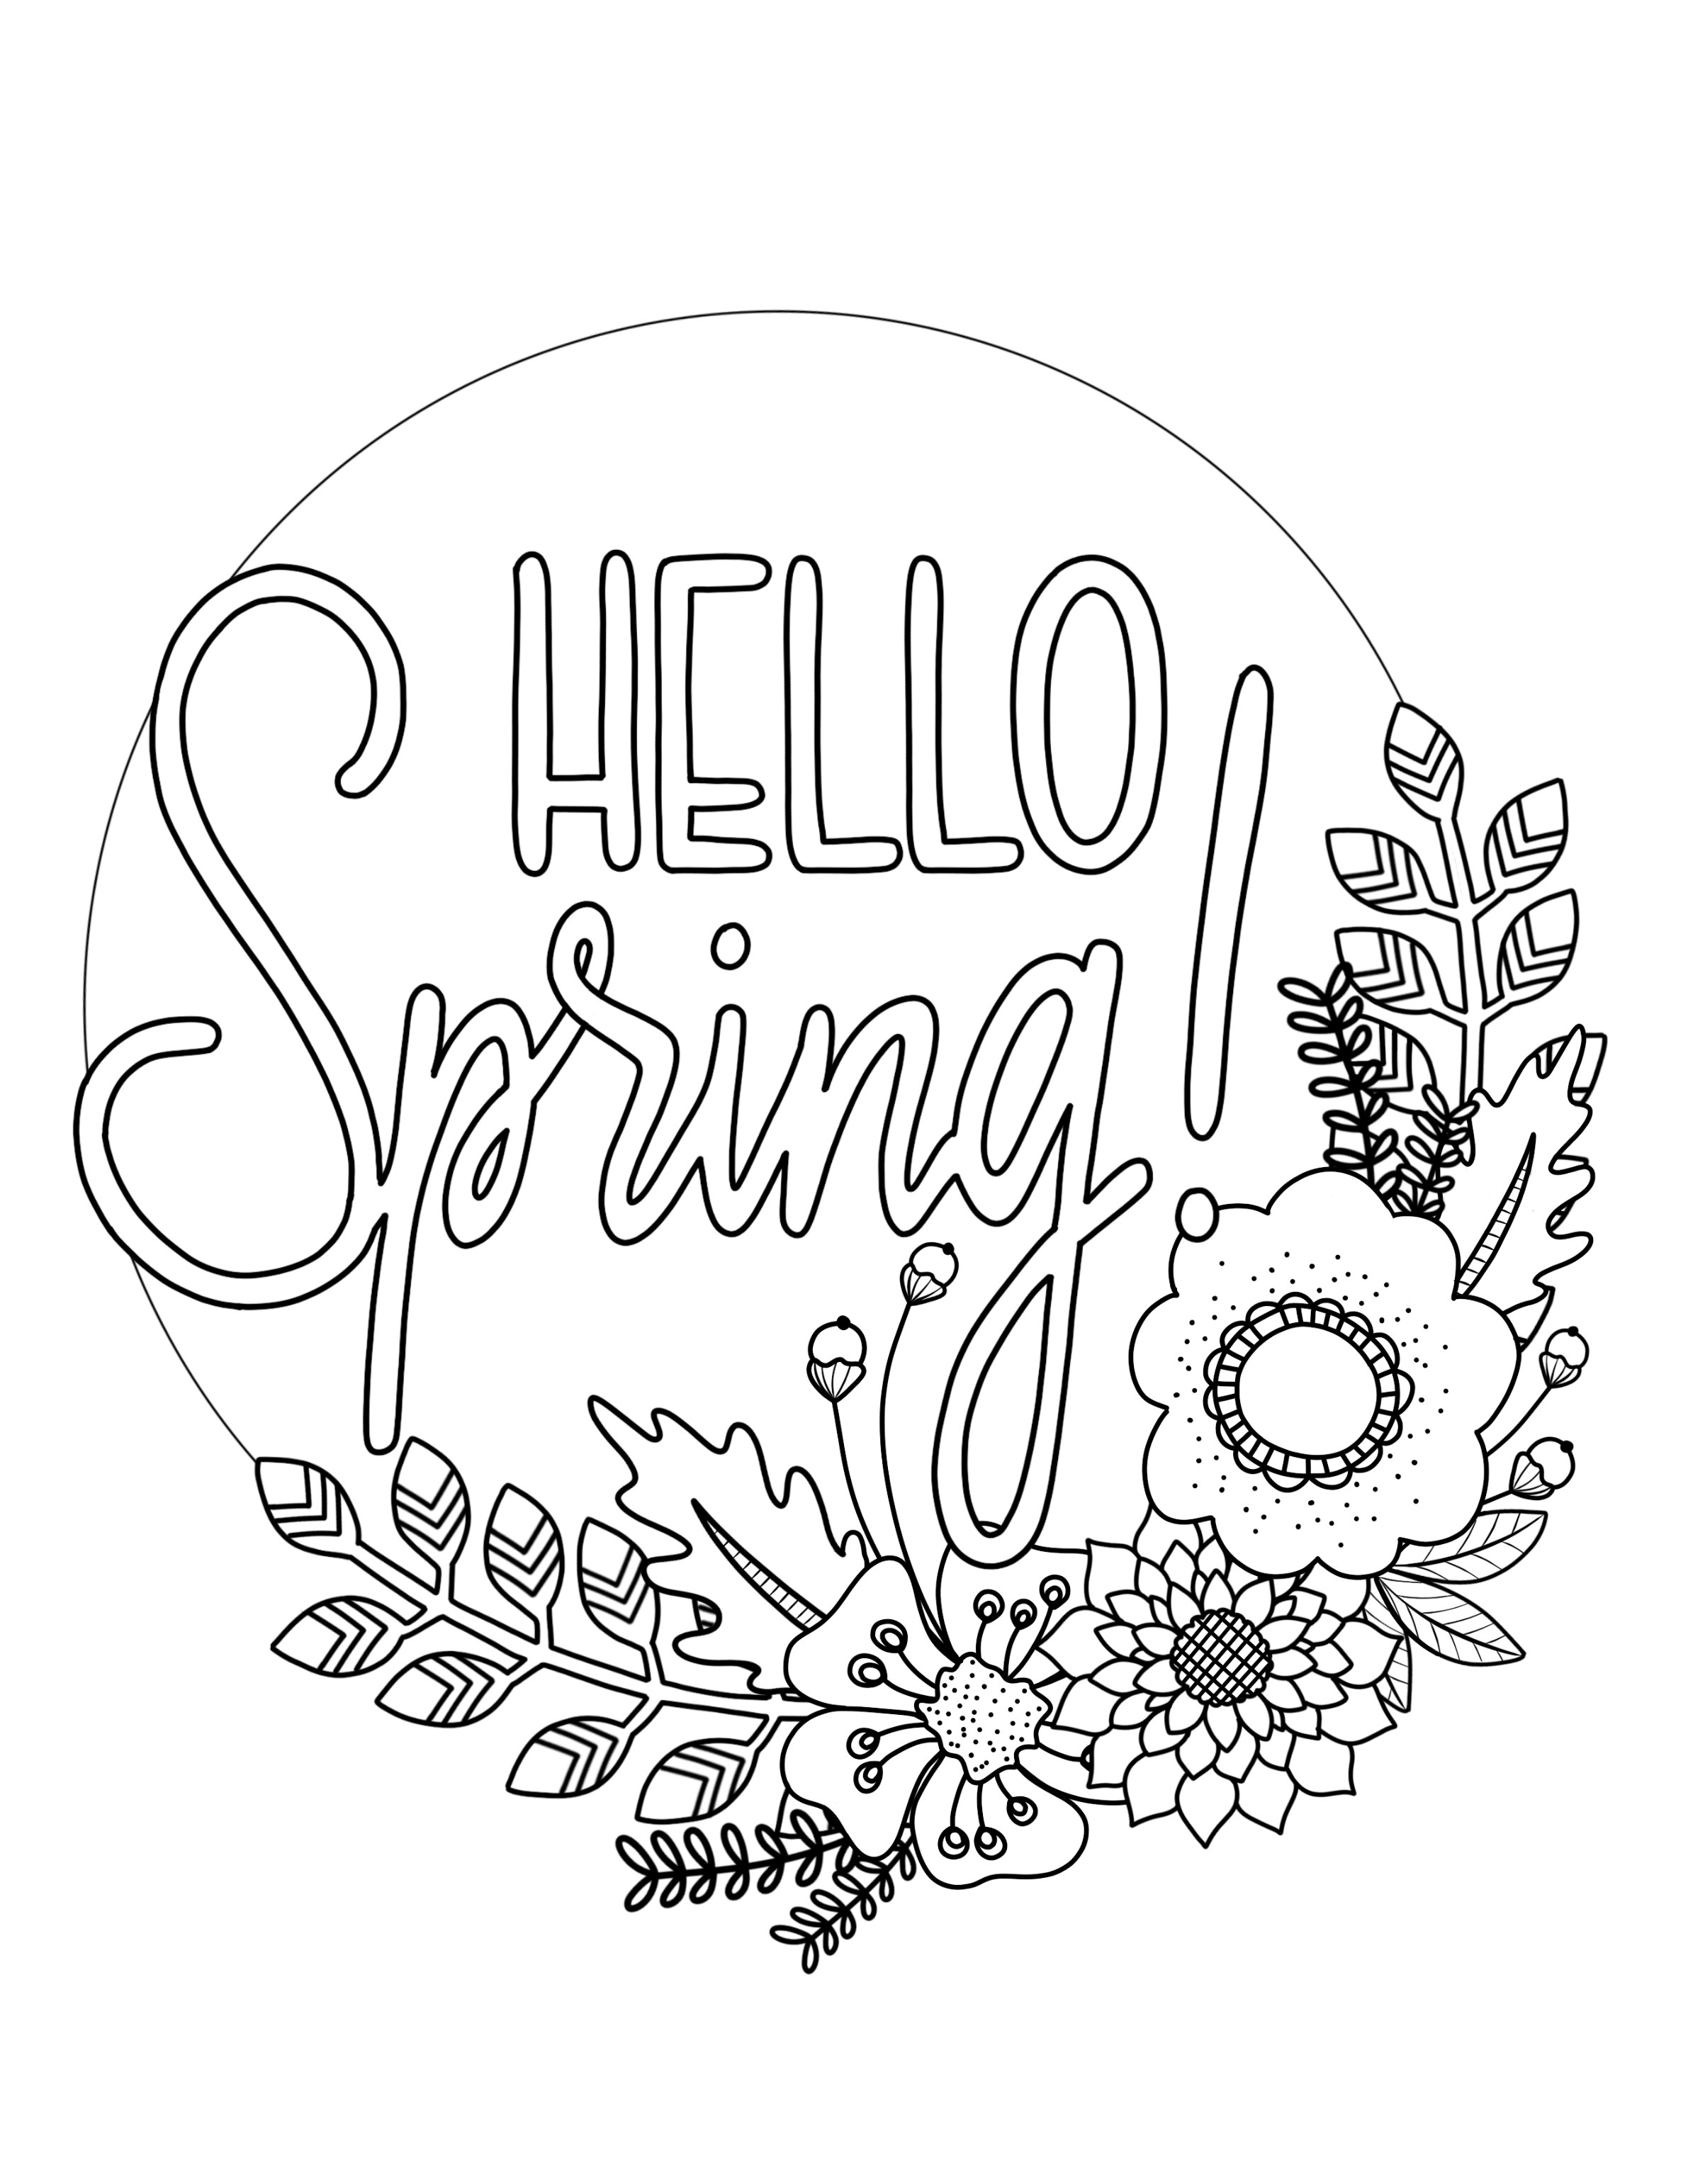 Printable Spring Coloring Page - Over The Big Moon - Free Printable Spring Coloring Pages